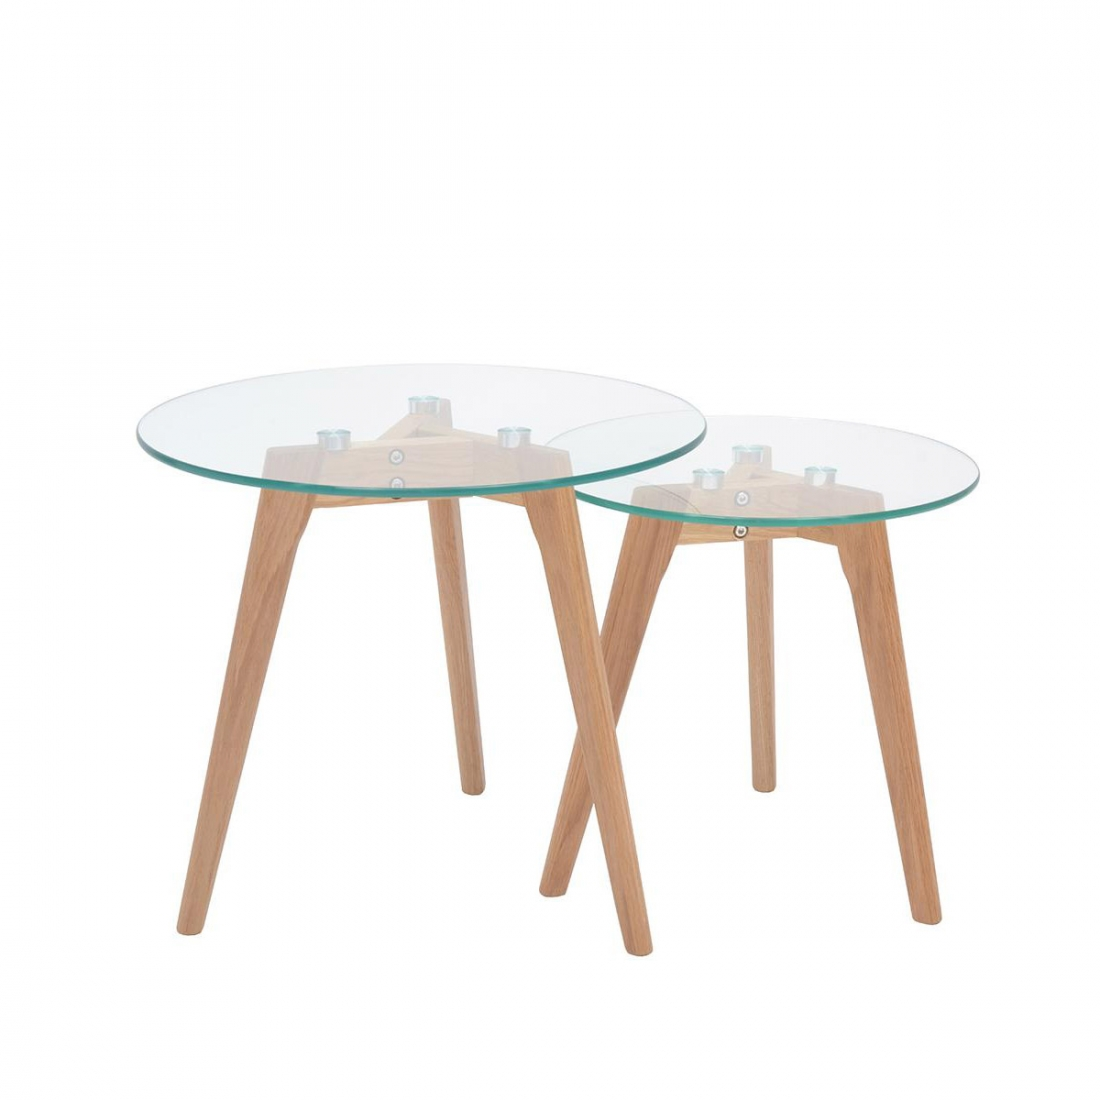 Table basse verre design avec plateau en verre zendart for Table basse verre design